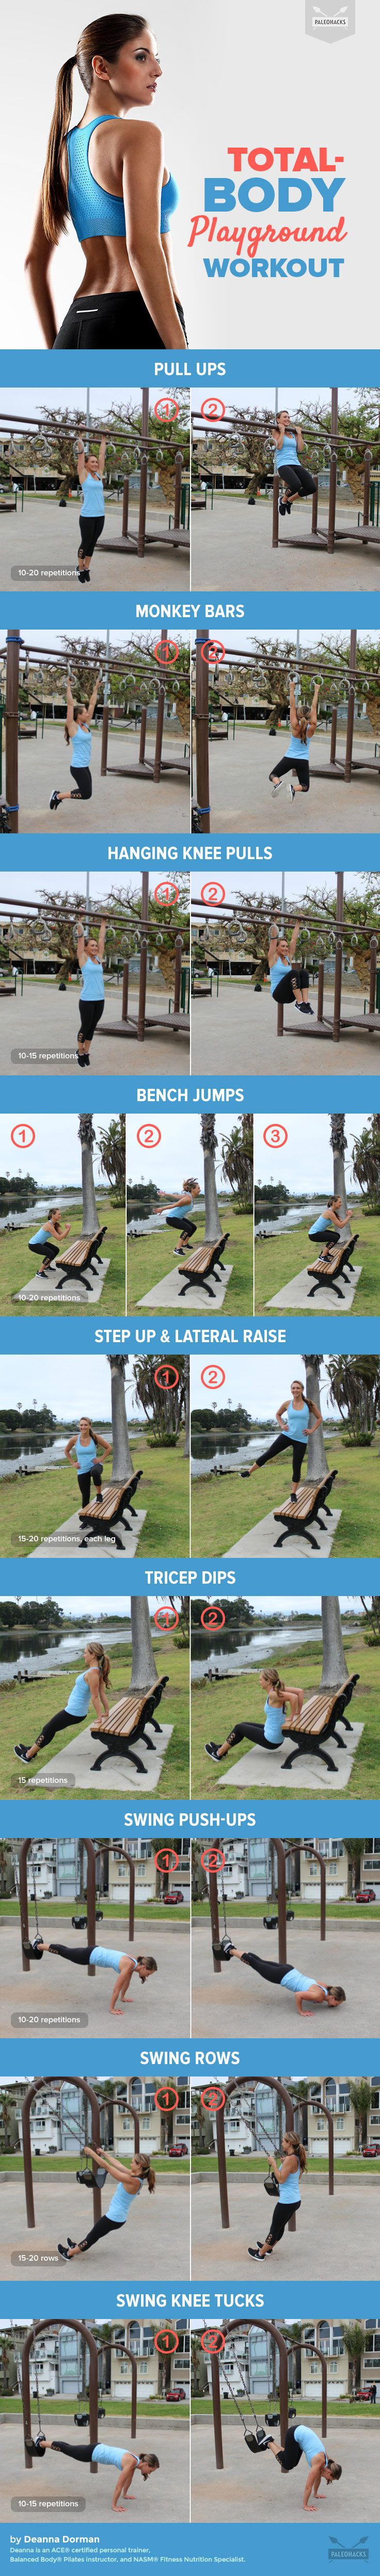 With all of the bars, benches, and monkey bars, it turns out that playgrounds make for the perfect workout! And no gym membership is required. For the full workout visit us here: http://paleo.co/playgroundwod